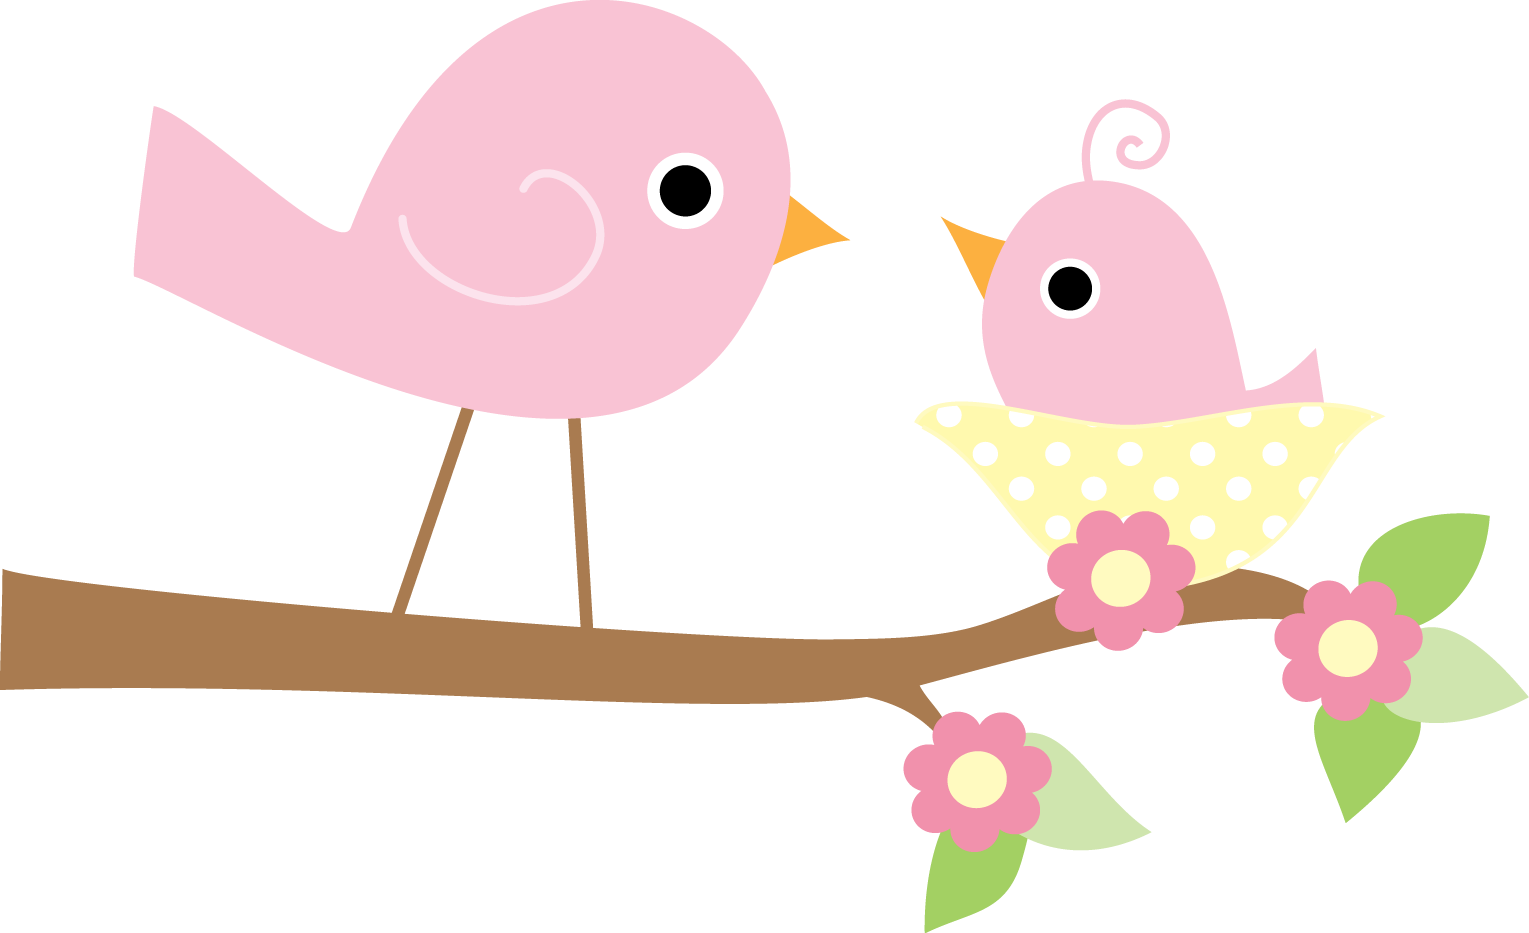 Baby bird png transparent. Clipart mom cute